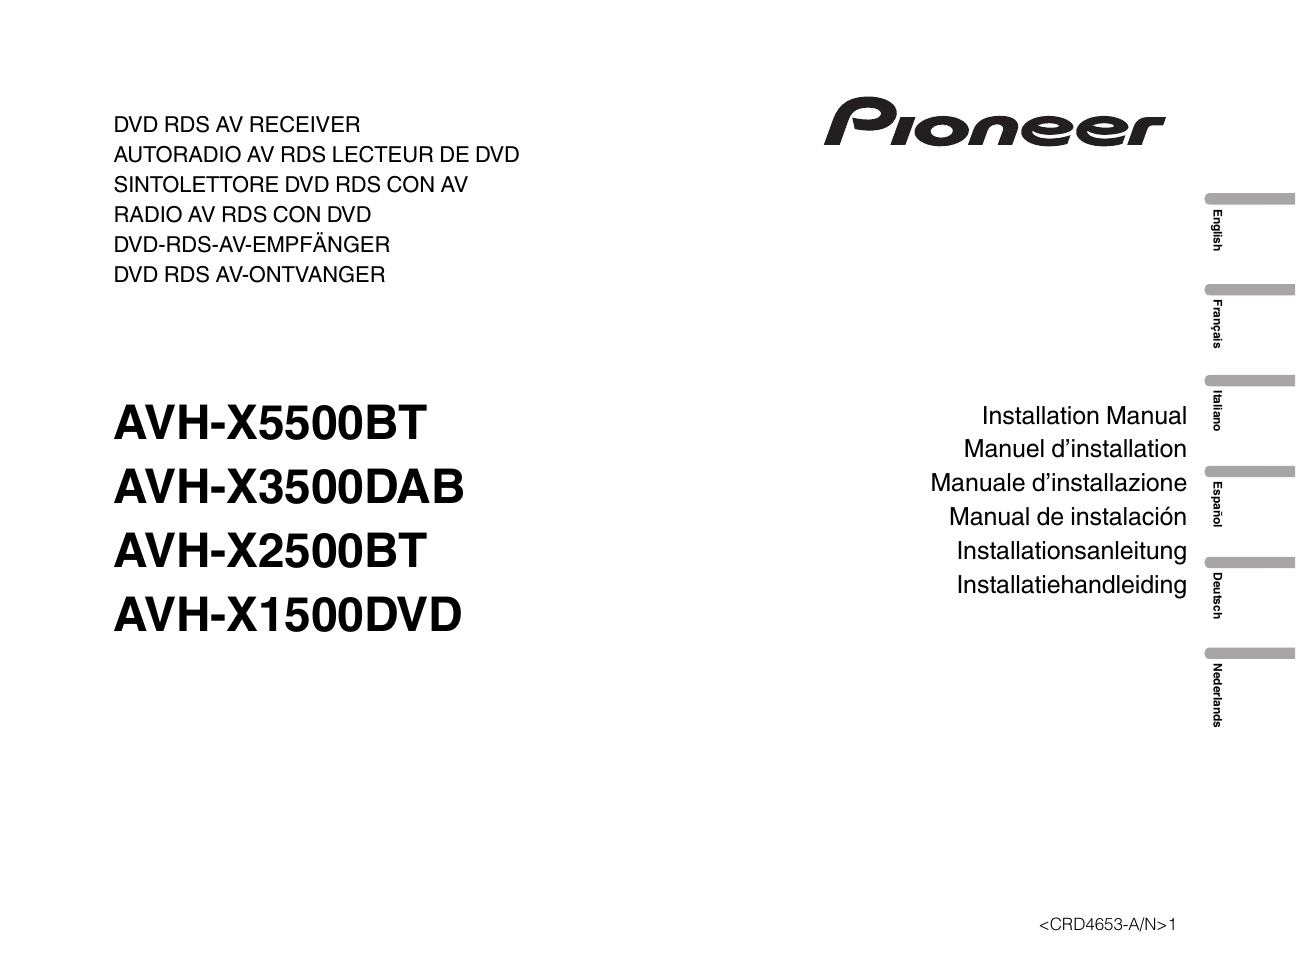 Pioneer Avh X1500Dvd Wiring Diagram from www.manualsdir.com